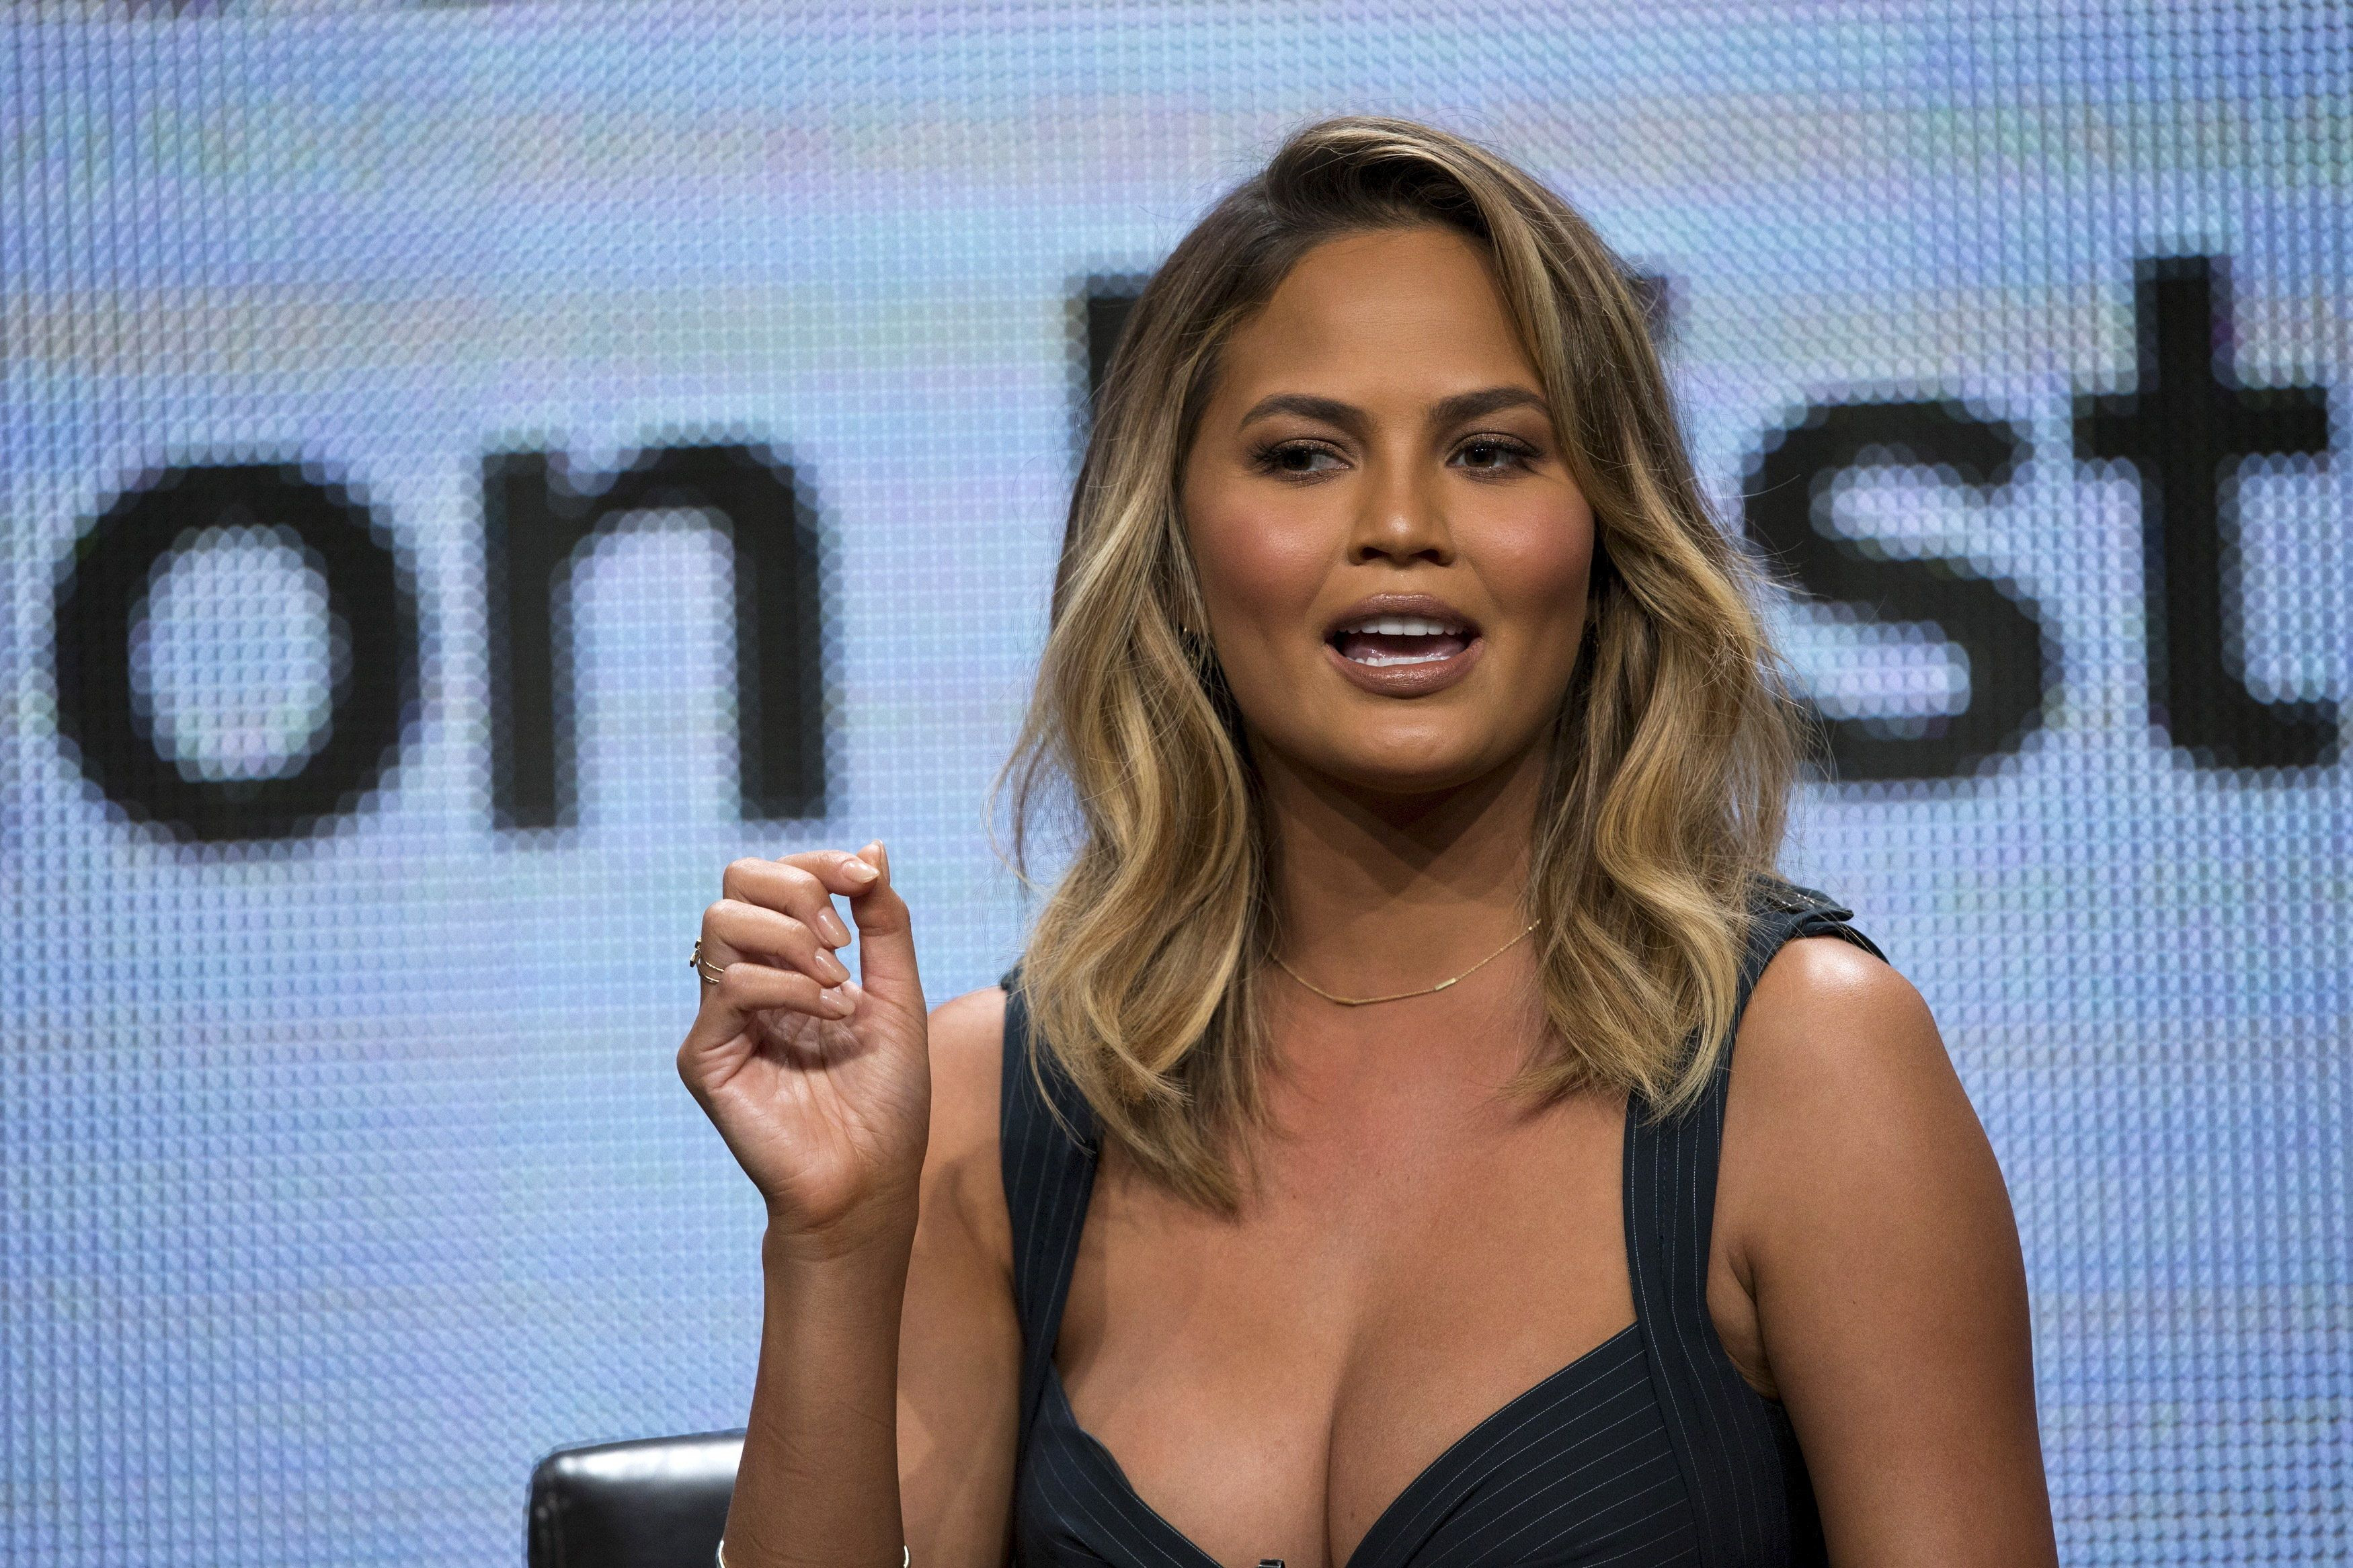 """Chrissy Teigen speaks at a panel for the Disney-ABC television series """"Fablife"""" during the Television Critics Association Cable Summer Press Tour in Beverly Hills, California August 4, 2015. REUTERS/Mario Anzuoni"""